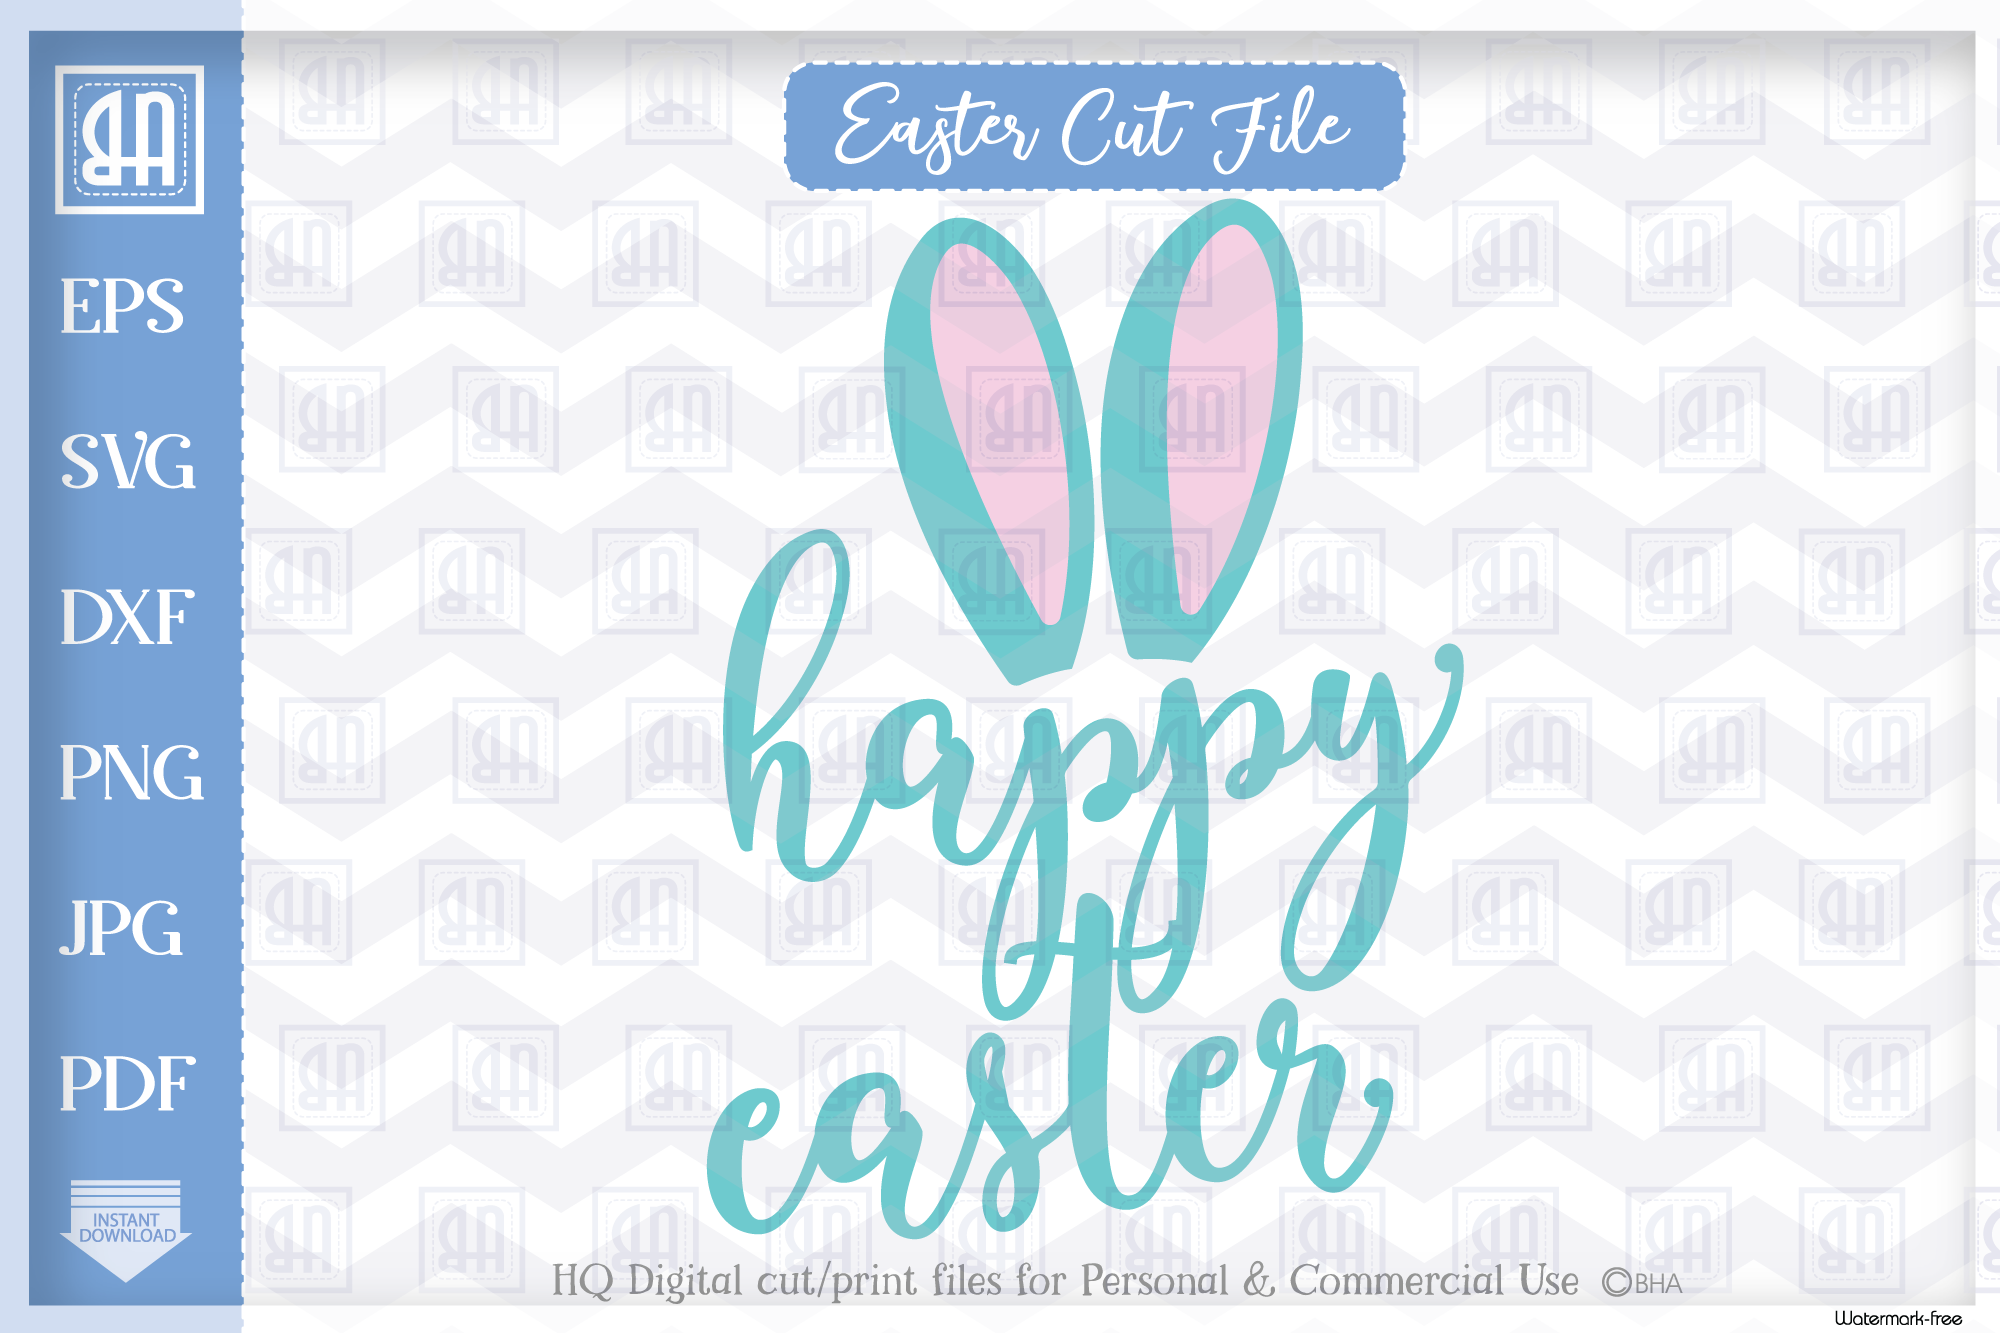 Download Free Happy Easter Bunny Bunny Ears Easter Graphic By Blueberry Hill for Cricut Explore, Silhouette and other cutting machines.